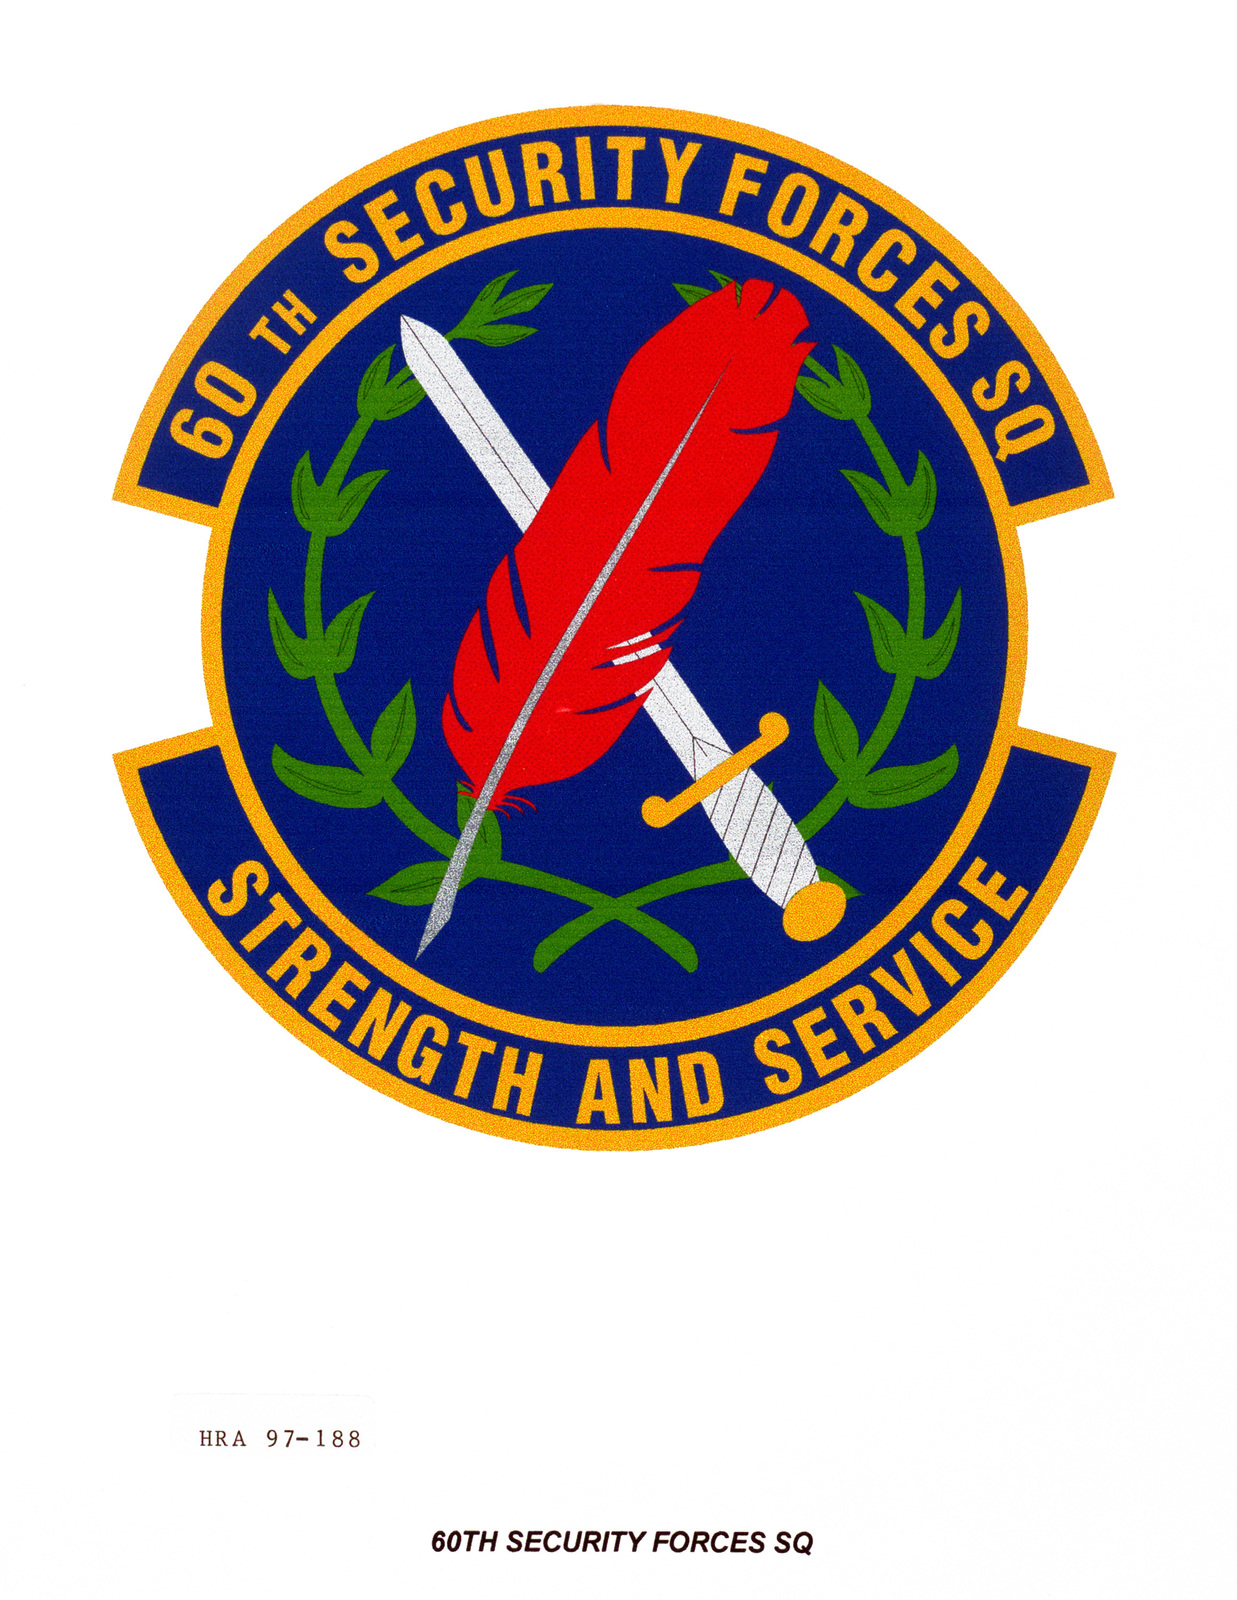 Air Force Organizational Emblem: 60th Security Forces Squadron, Air Mobility Command